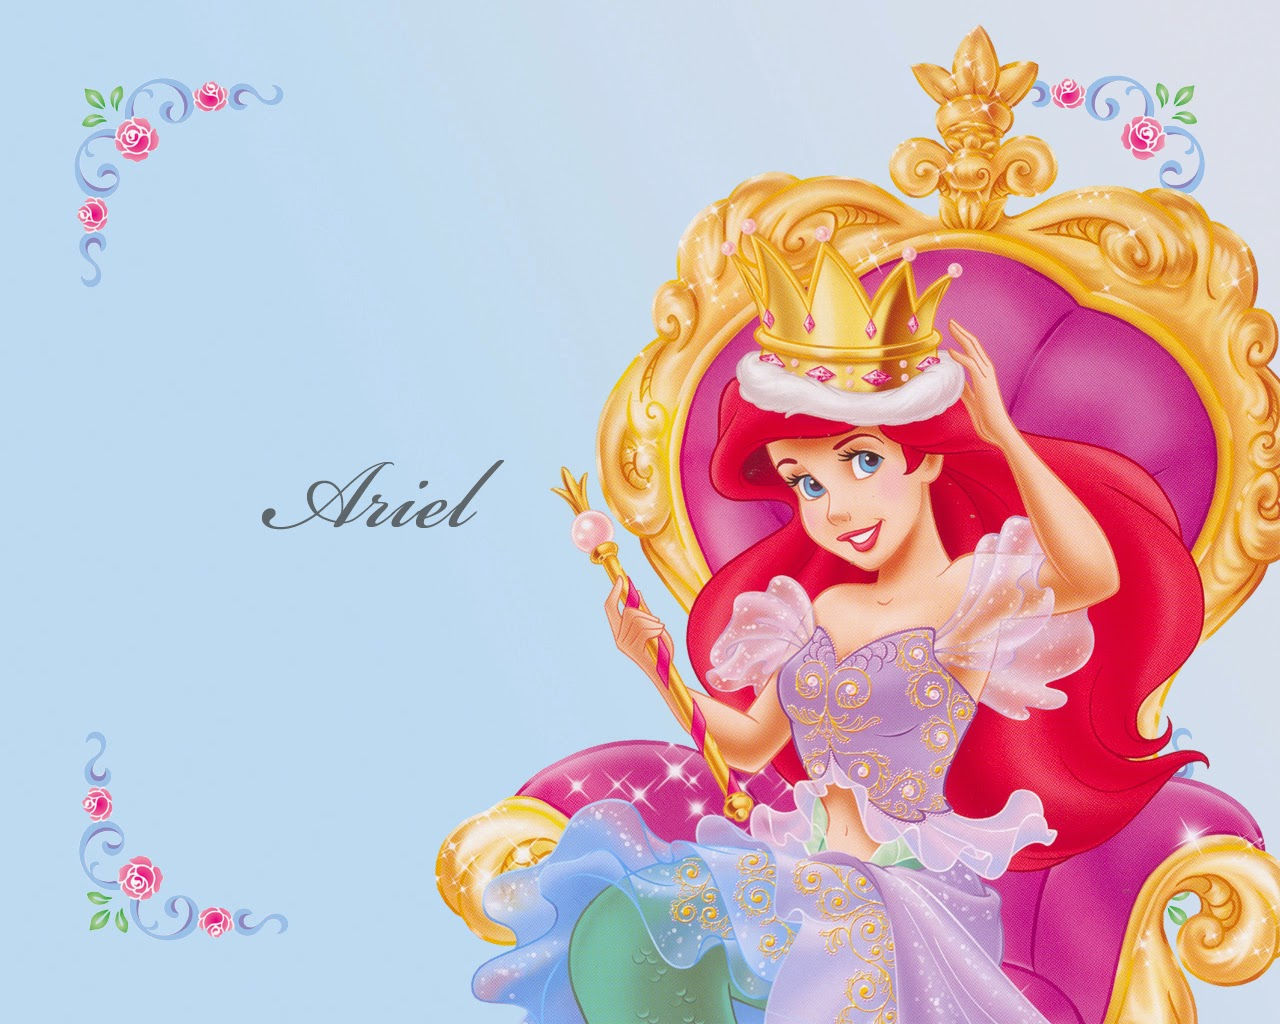 Ariel-disney-princess-6168095-1280-1024